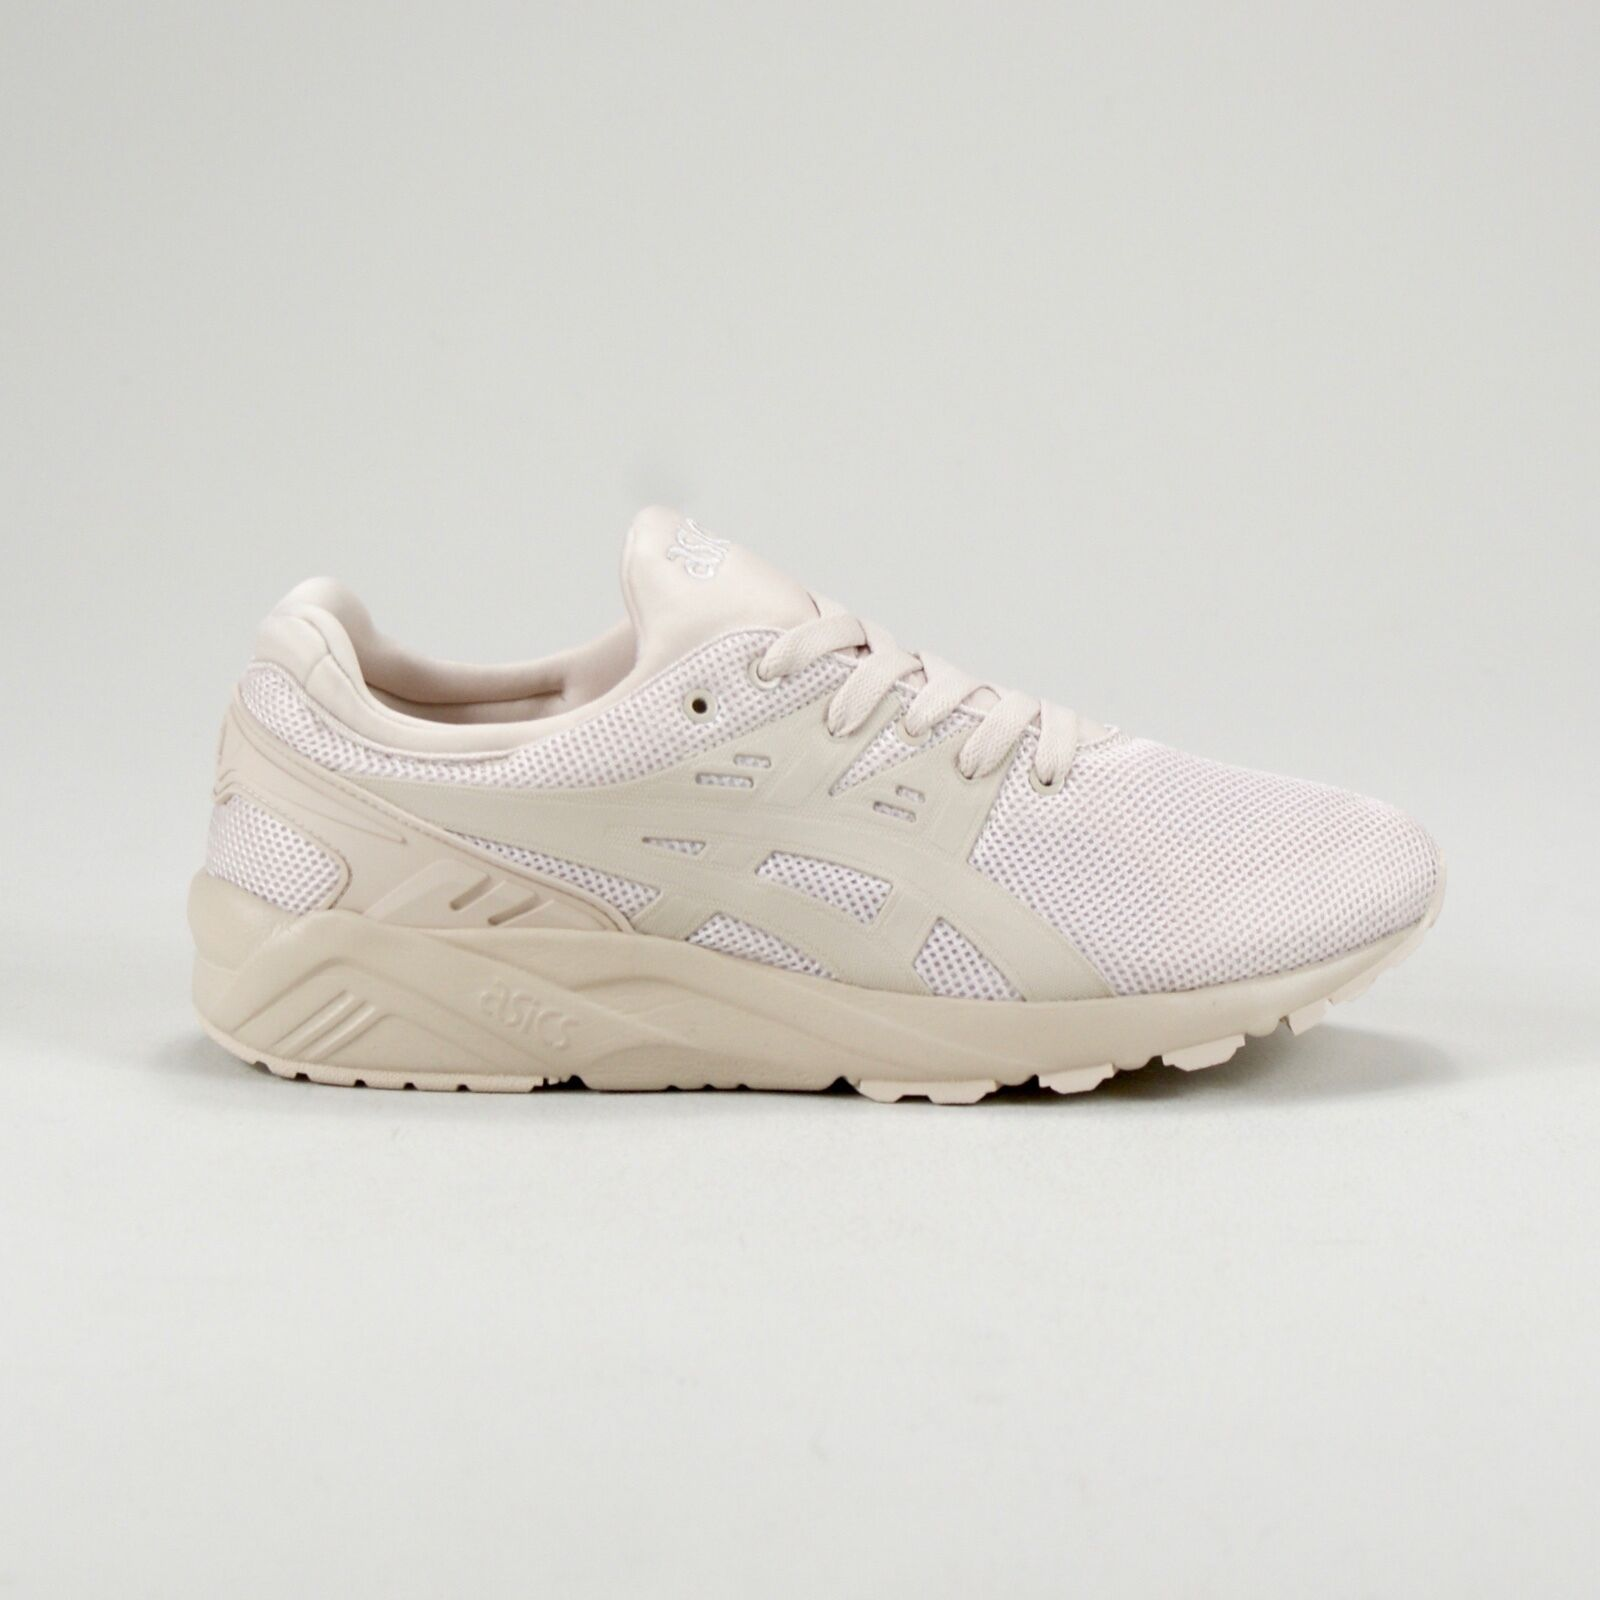 Asics Gel Kayano Evo Chaussures – Whisper rose new in box UK